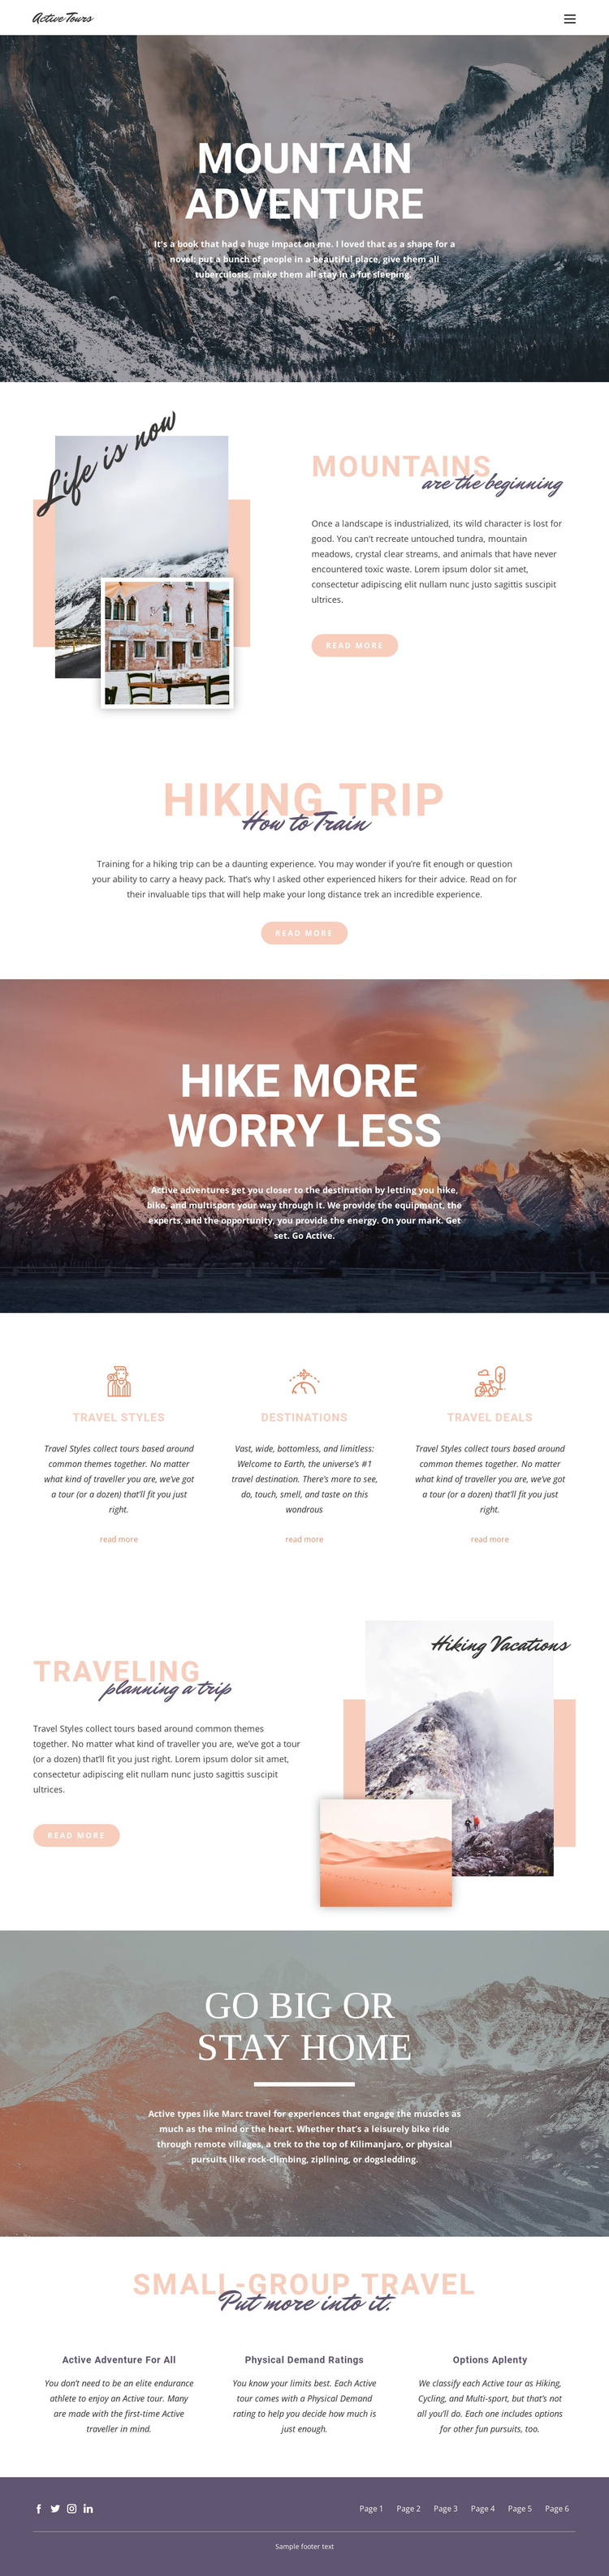 Guided backpacking trips Website Builder Software